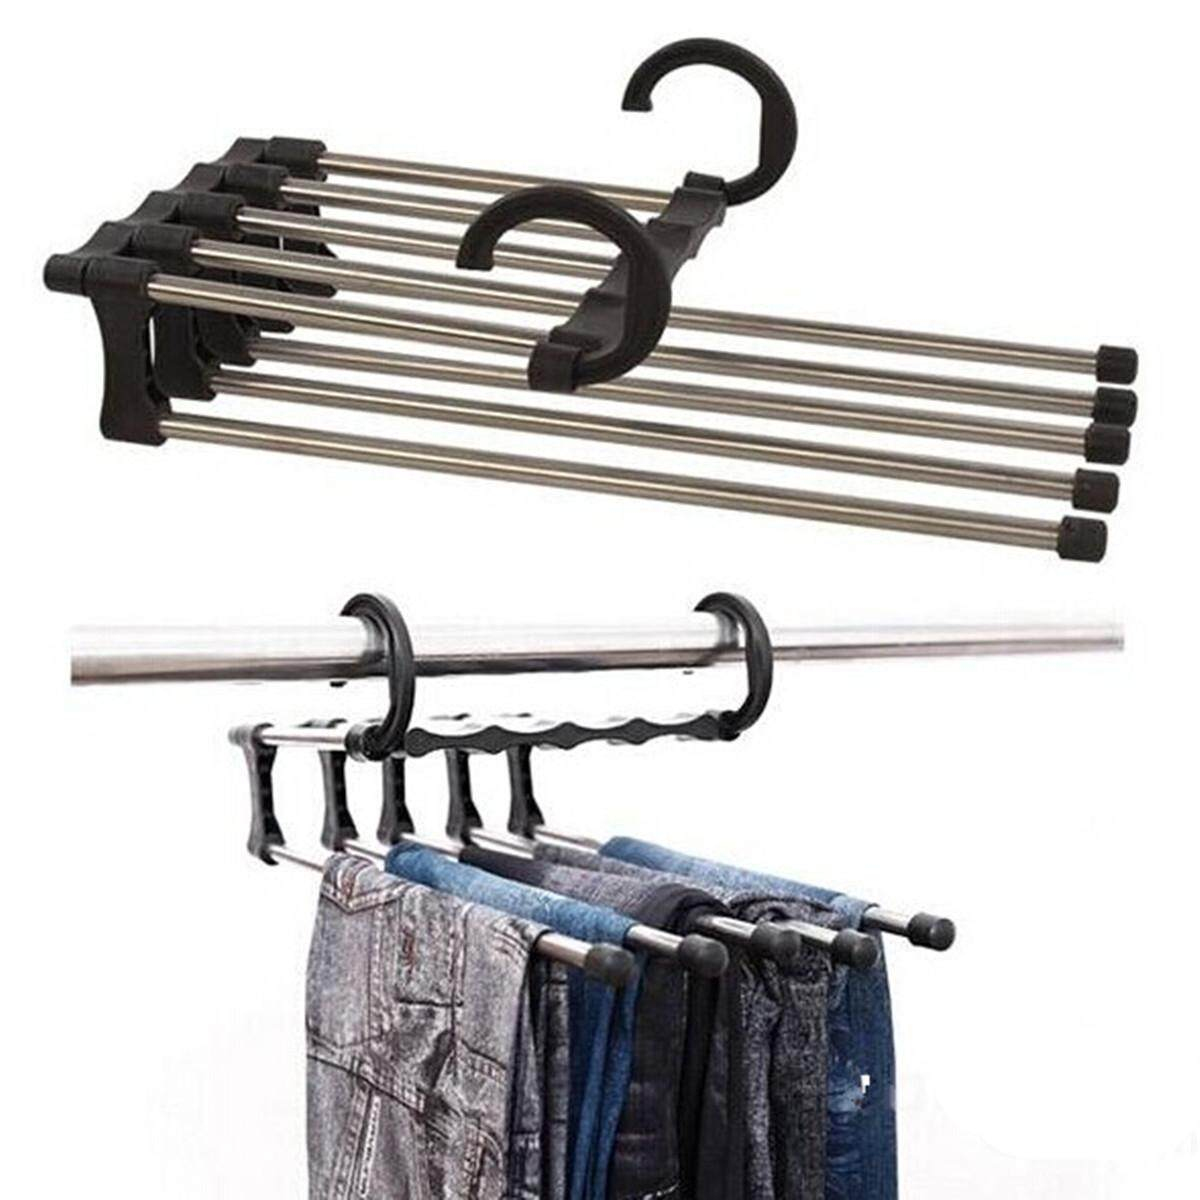 Stainless Steel Multifunction Retractable Trousers Hanger Jeans Holder By Moonbeam.